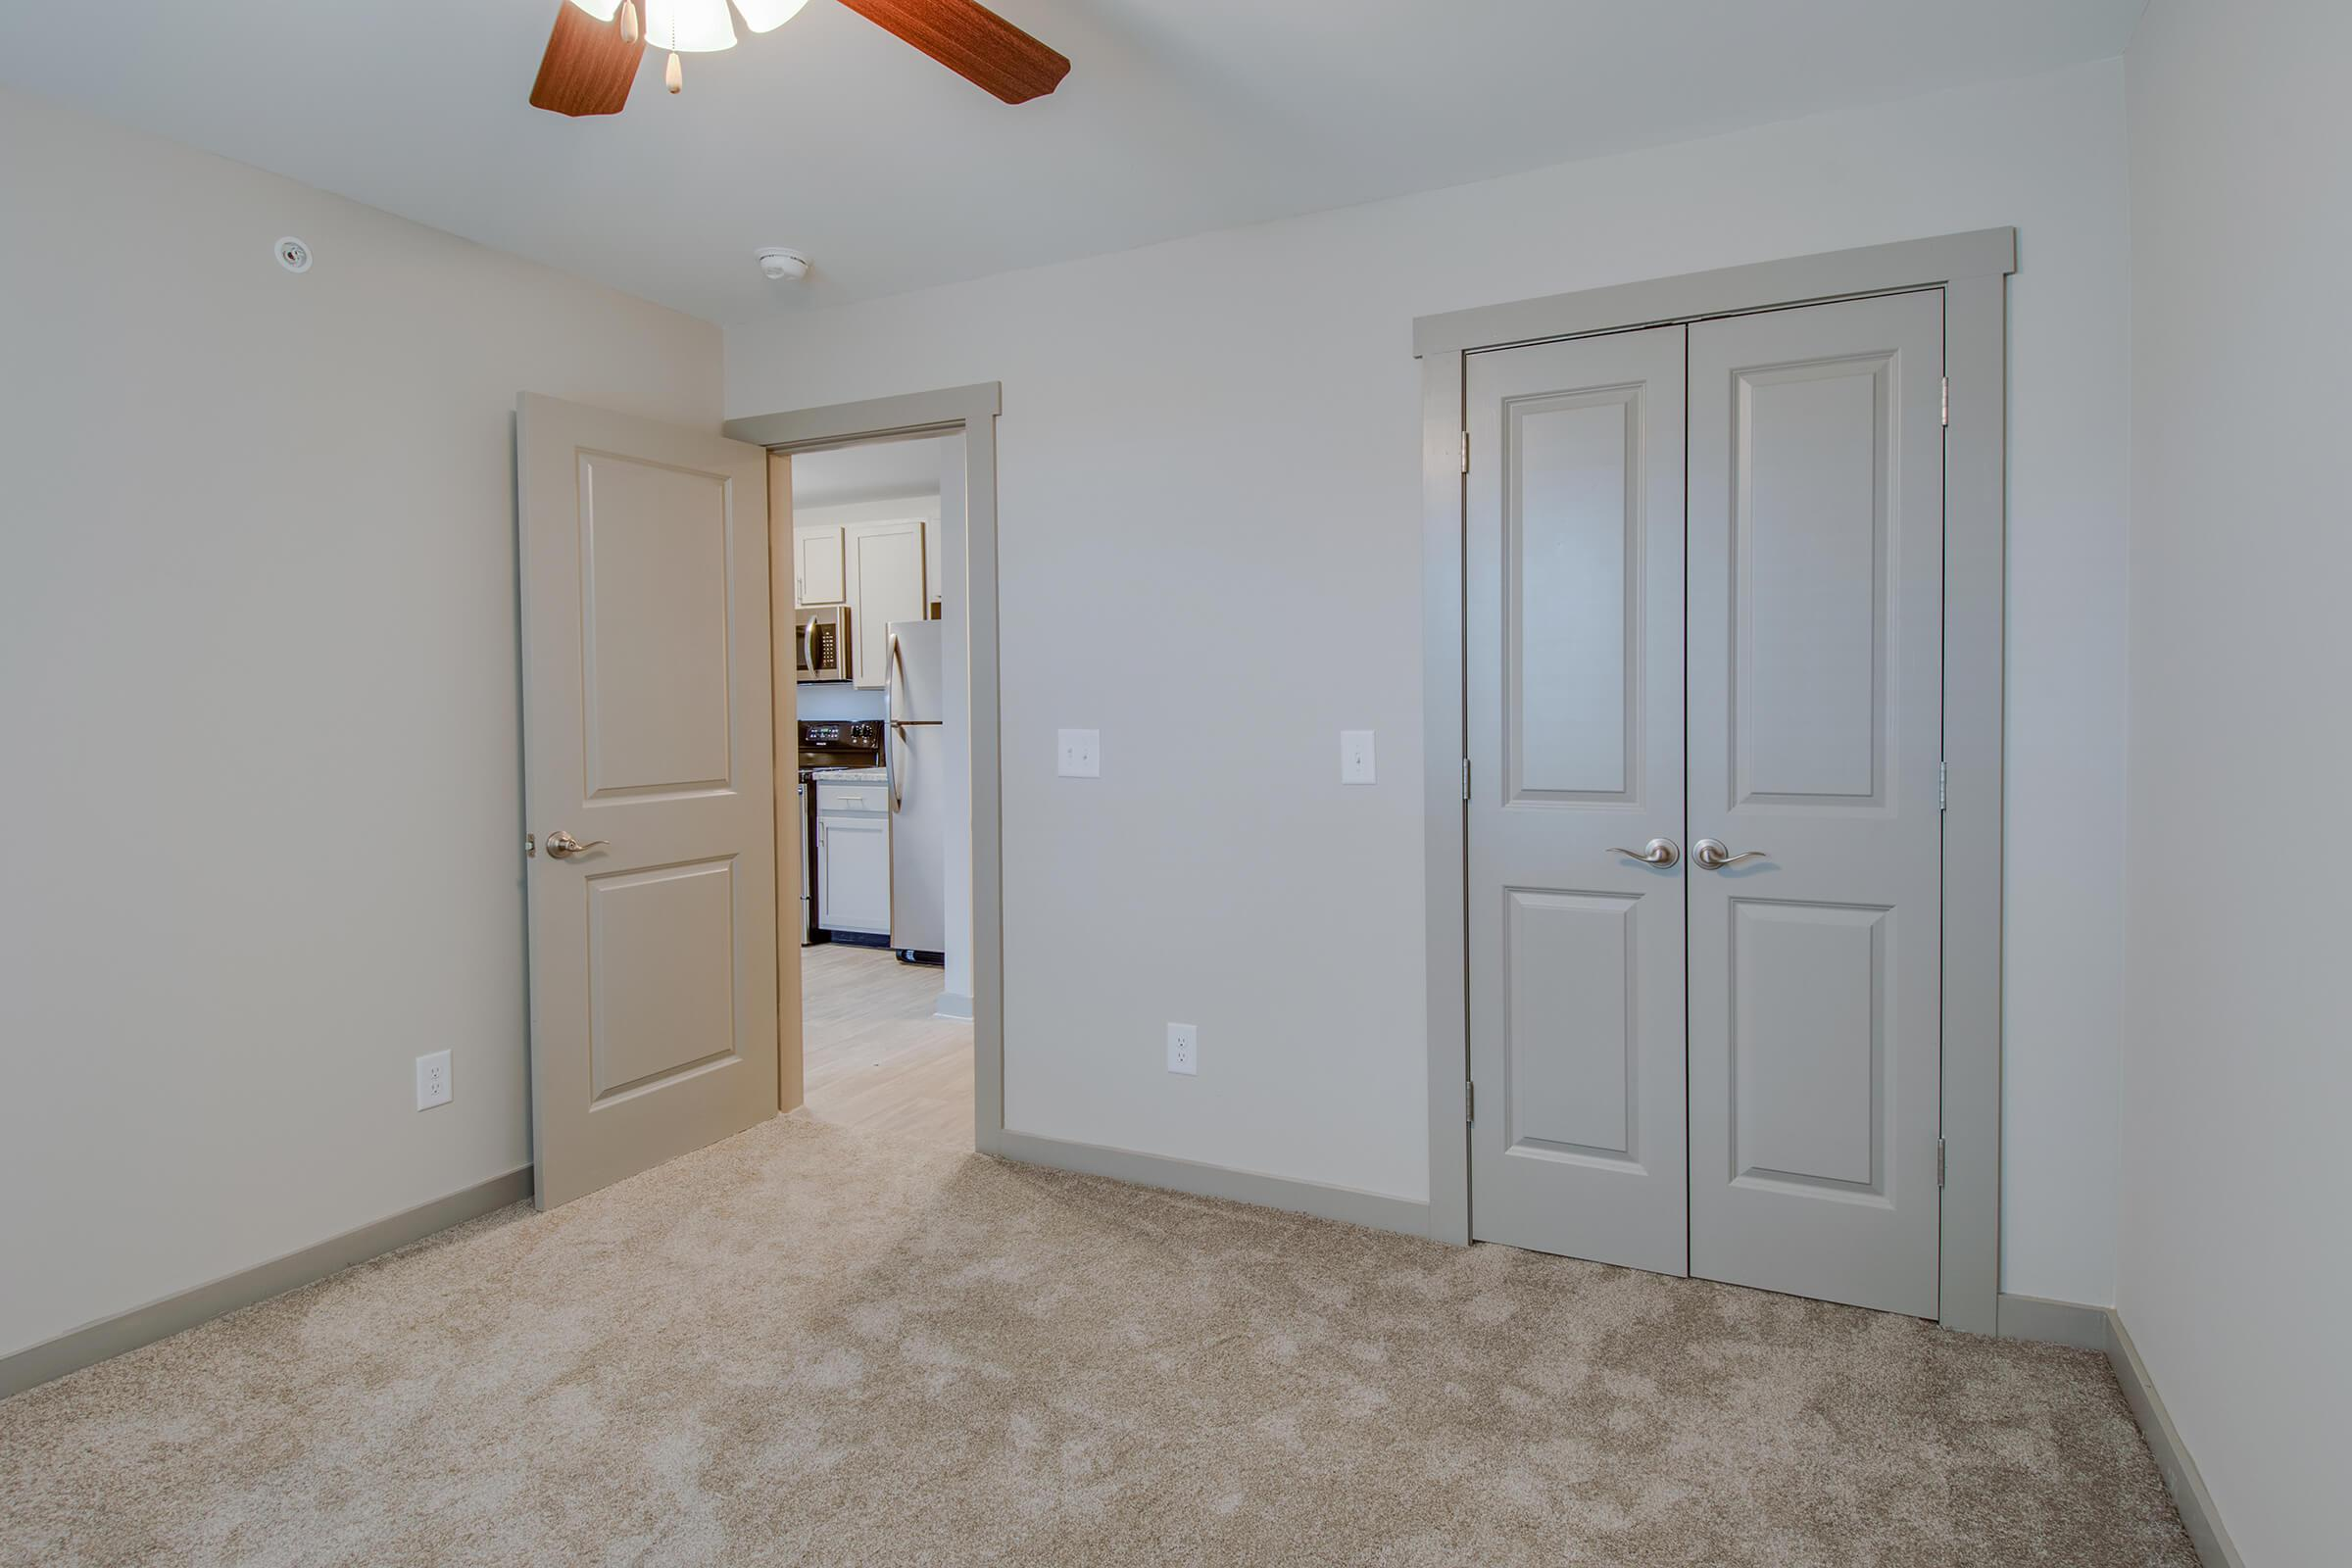 a kitchen with a white door